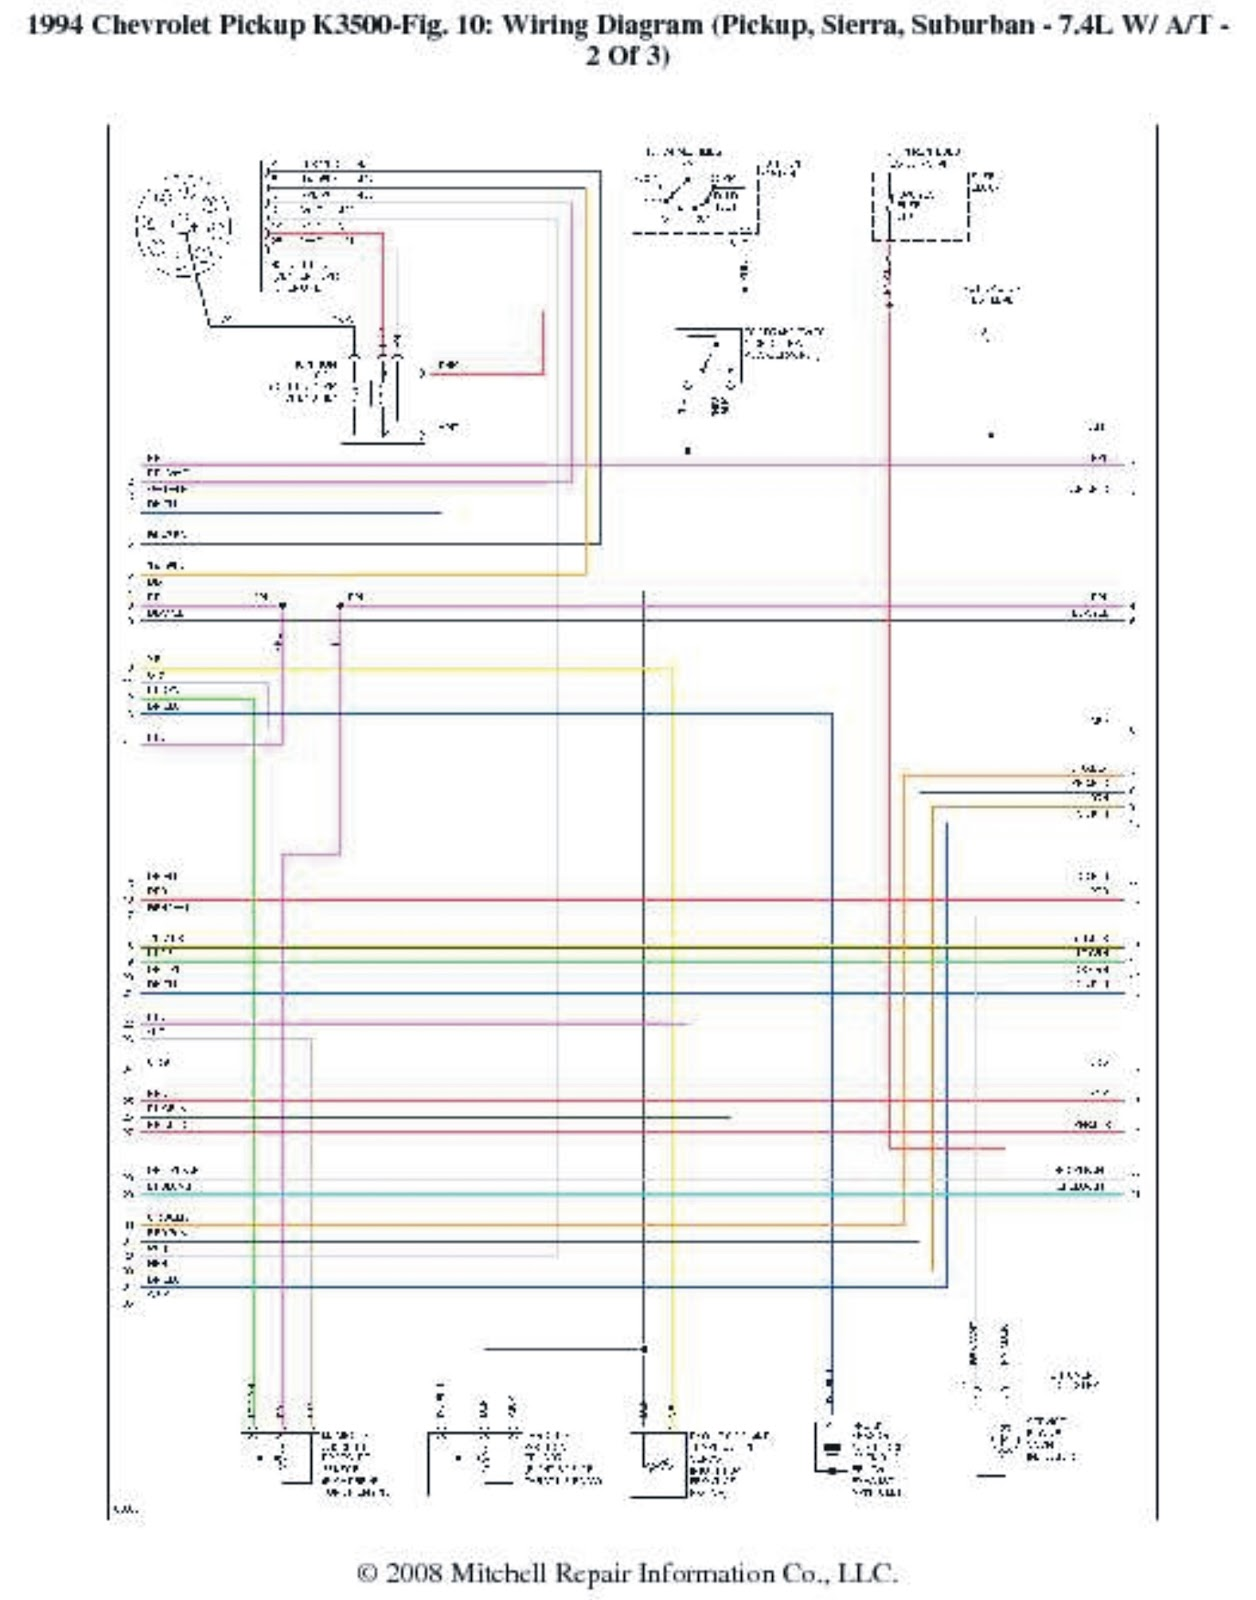 Skoda Remote Starter Diagram | Wiring Diagram on 2010 sprinter exhaust system diagram, 2010 sprinter belt diagram, 2010 sprinter fuse diagram,